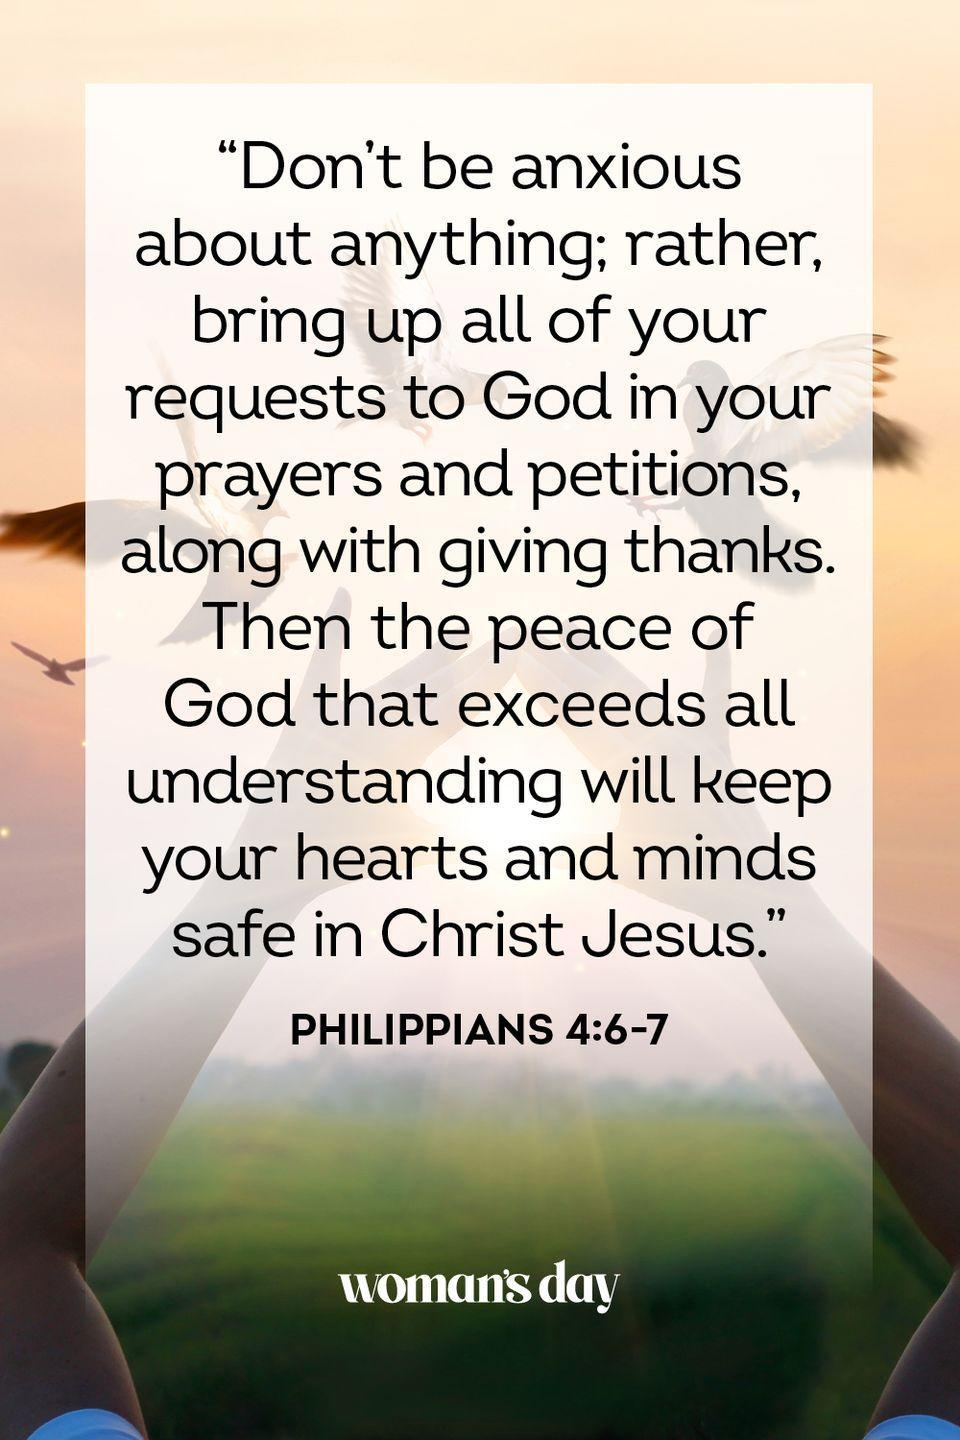 """<p>""""Don't be anxious about anything; rather, bring up all of your requests to God in your prayers and petitions, along with giving thanks. Then the peace of God that exceeds all understanding will keep your hearts and minds safe in Christ Jesus."""" — Philippians 4:6-7</p><p><strong>The Good News</strong>: God can't solve your problems, but he can be there to lighten your load and help you find peace in trying times. </p><p><strong>__________________________________________________________</strong><em><br><br><a href=""""https://subscribe.hearstmags.com/subscribe/womansday/253396?source=wdy_edit_article"""" rel=""""nofollow noopener"""" target=""""_blank"""" data-ylk=""""slk:Subscribe to Woman's Day"""" class=""""link rapid-noclick-resp"""">Subscribe to Woman's Day</a> today and get <strong>73% off your first 12 issues</strong>. And while you're at it, <a href=""""https://subscribe.hearstmags.com/circulation/shared/email/newsletters/signup/wdy-su01.html"""" rel=""""nofollow noopener"""" target=""""_blank"""" data-ylk=""""slk:sign up for our FREE newsletter"""" class=""""link rapid-noclick-resp"""">sign up for our FREE newsletter</a> for even more of the Woman's Day content you want.</em><br></p>"""